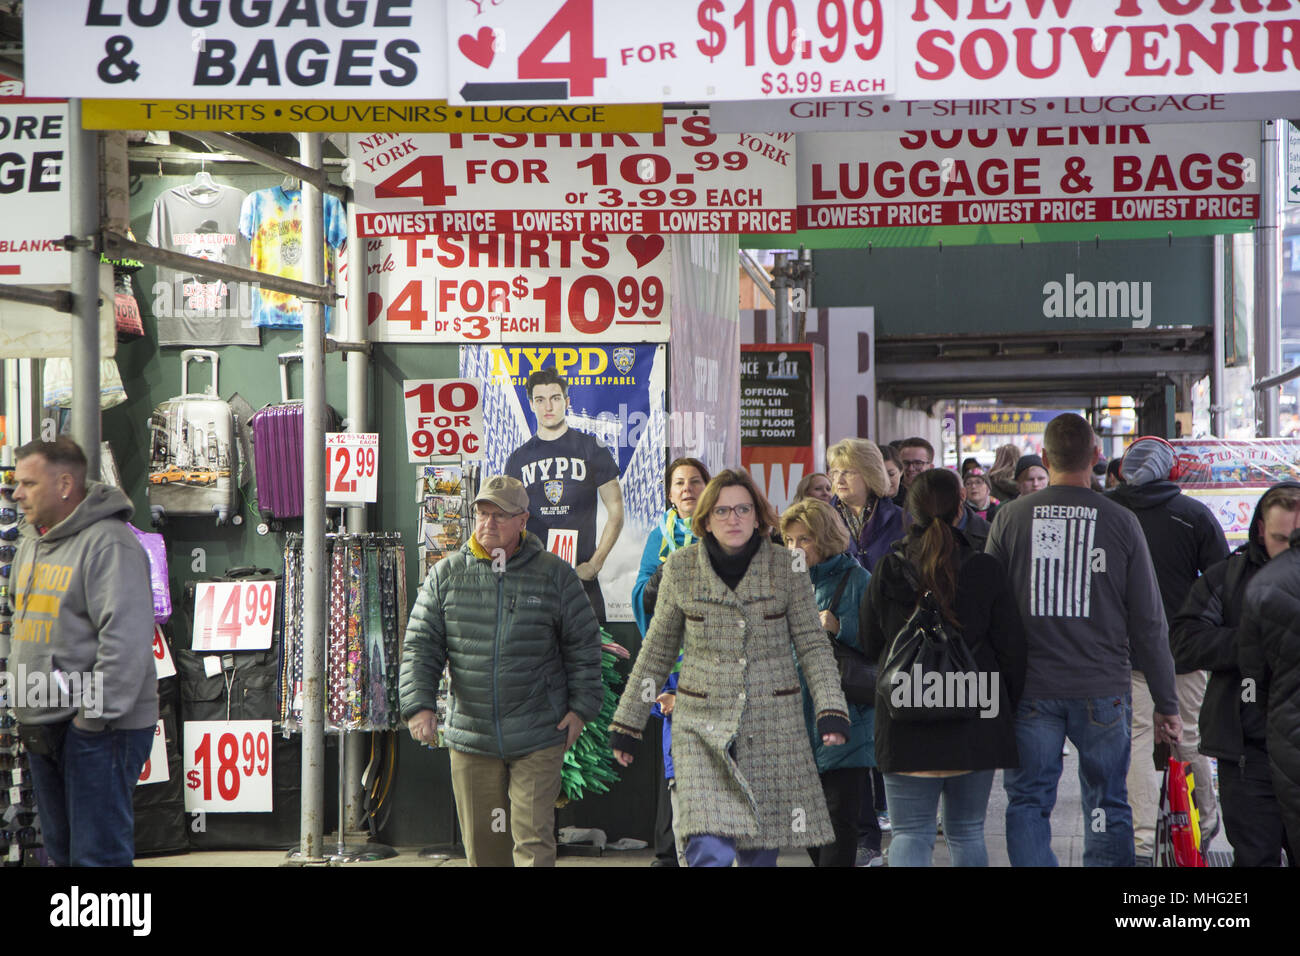 People walk past shops selling souvenirs and luggage geared for tourists in the Timnes Square neighborhood along 7th Avenue in midtown Manhattan. - Stock Image